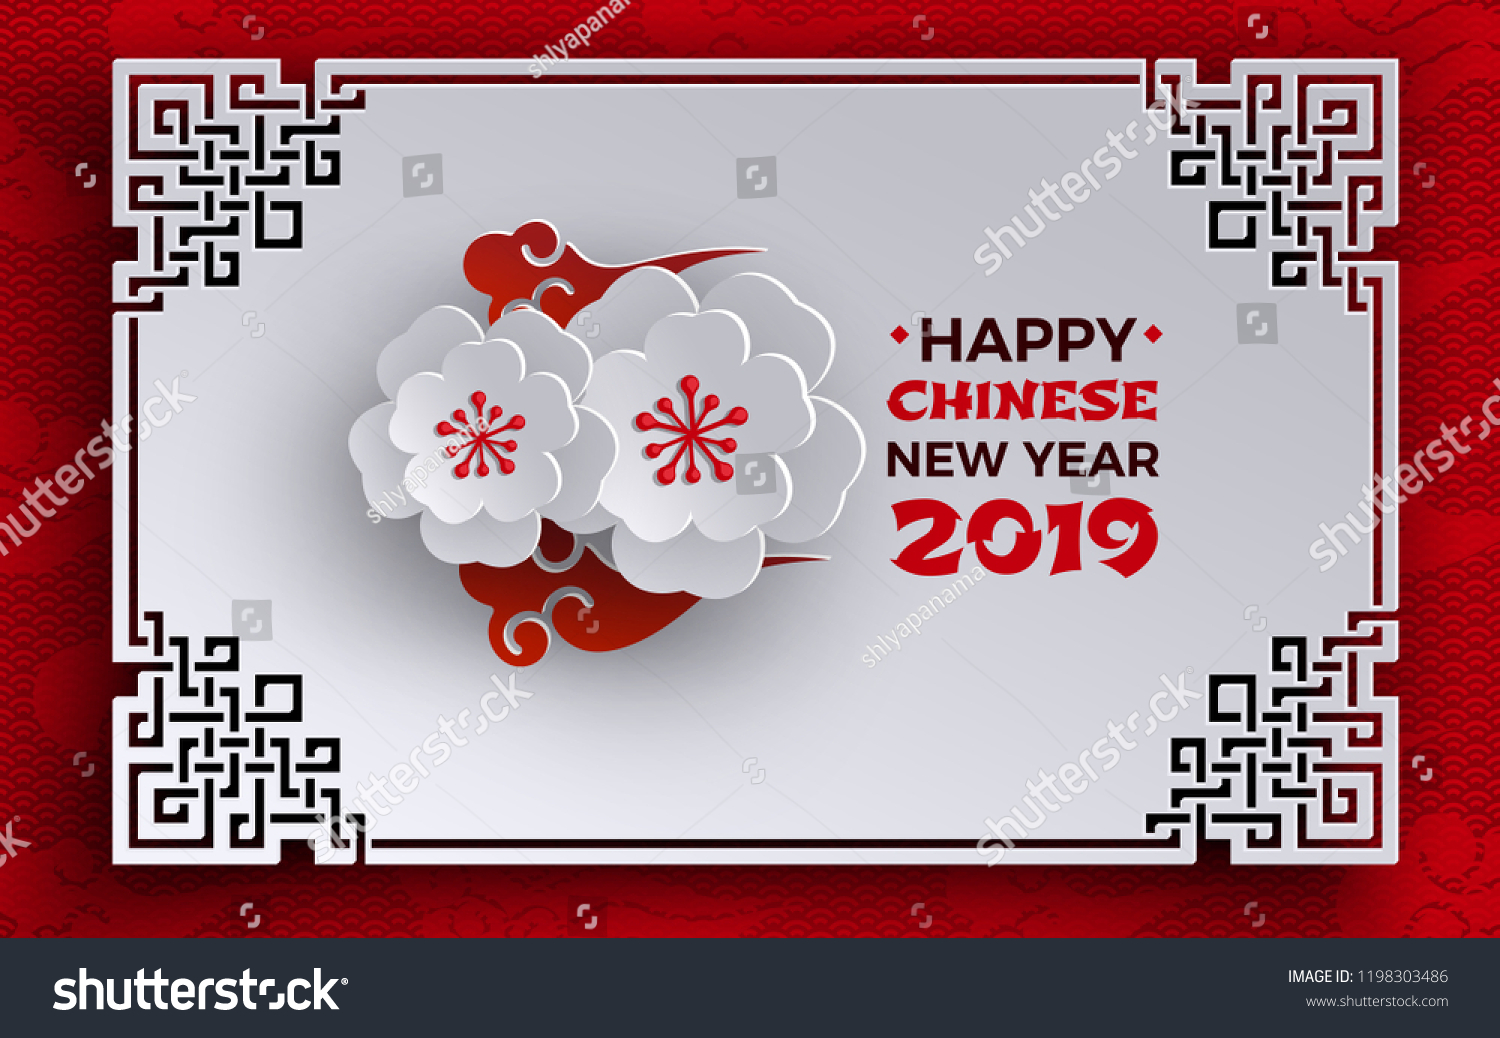 Chinese New Year 2019 Banner Oriental Stock Vector Royalty Free